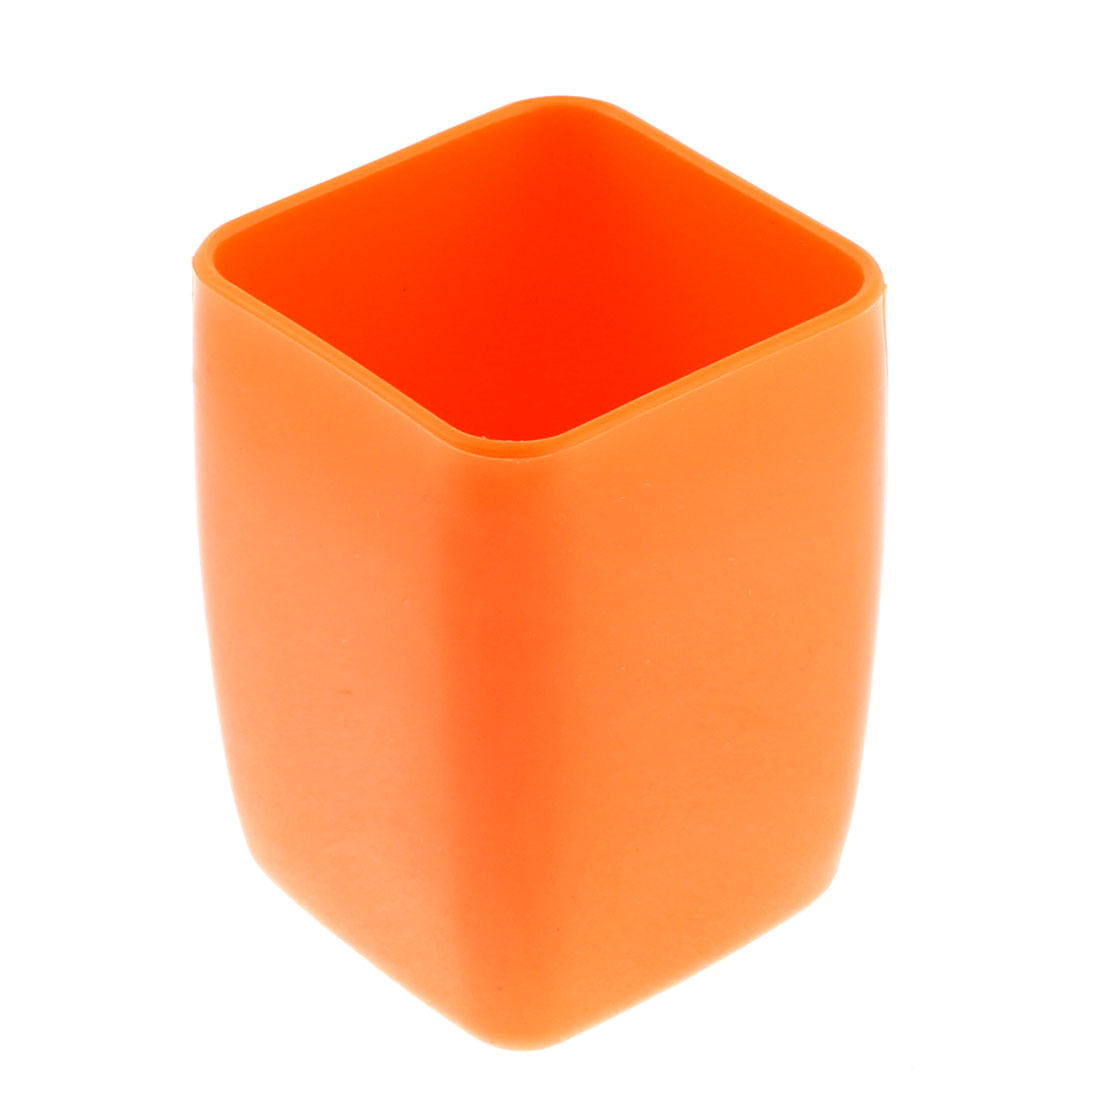 Unique Bargains Bathroom Plastic Cuboid Shape 200ml 9cm Height Water Toothbrush Holder Gargle Cup - image 1 of 2